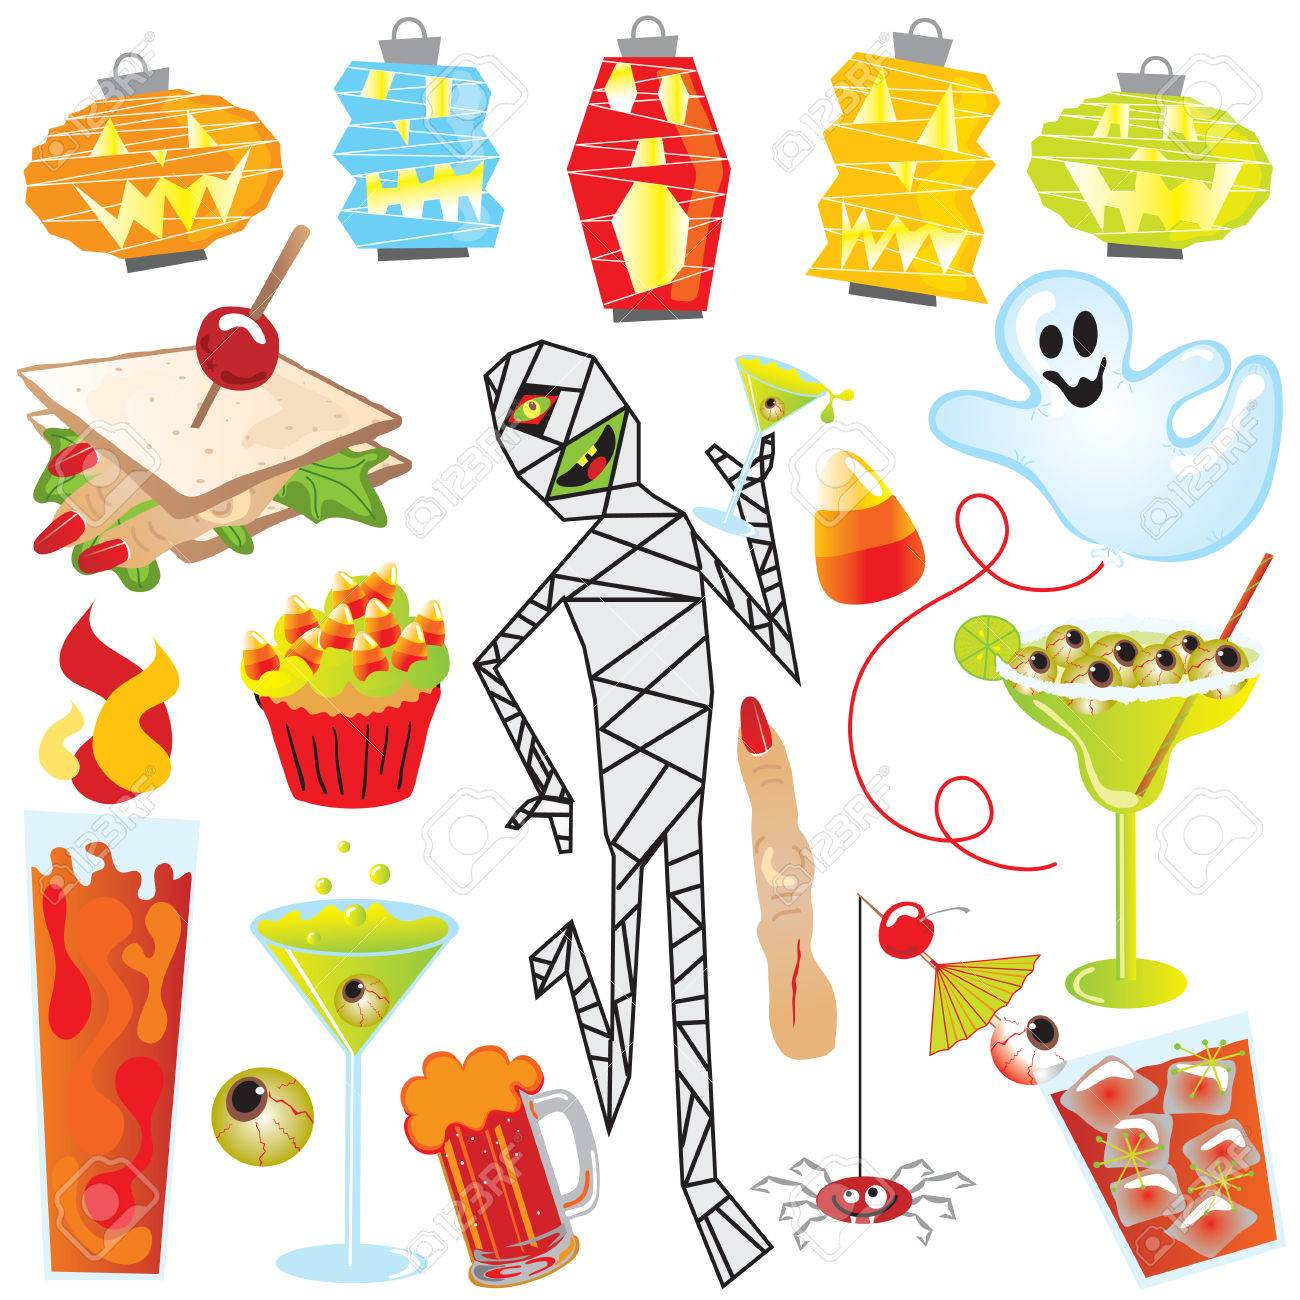 Halloween Party Clip Art With Finger Sandwich And Creepy Cocktails ...